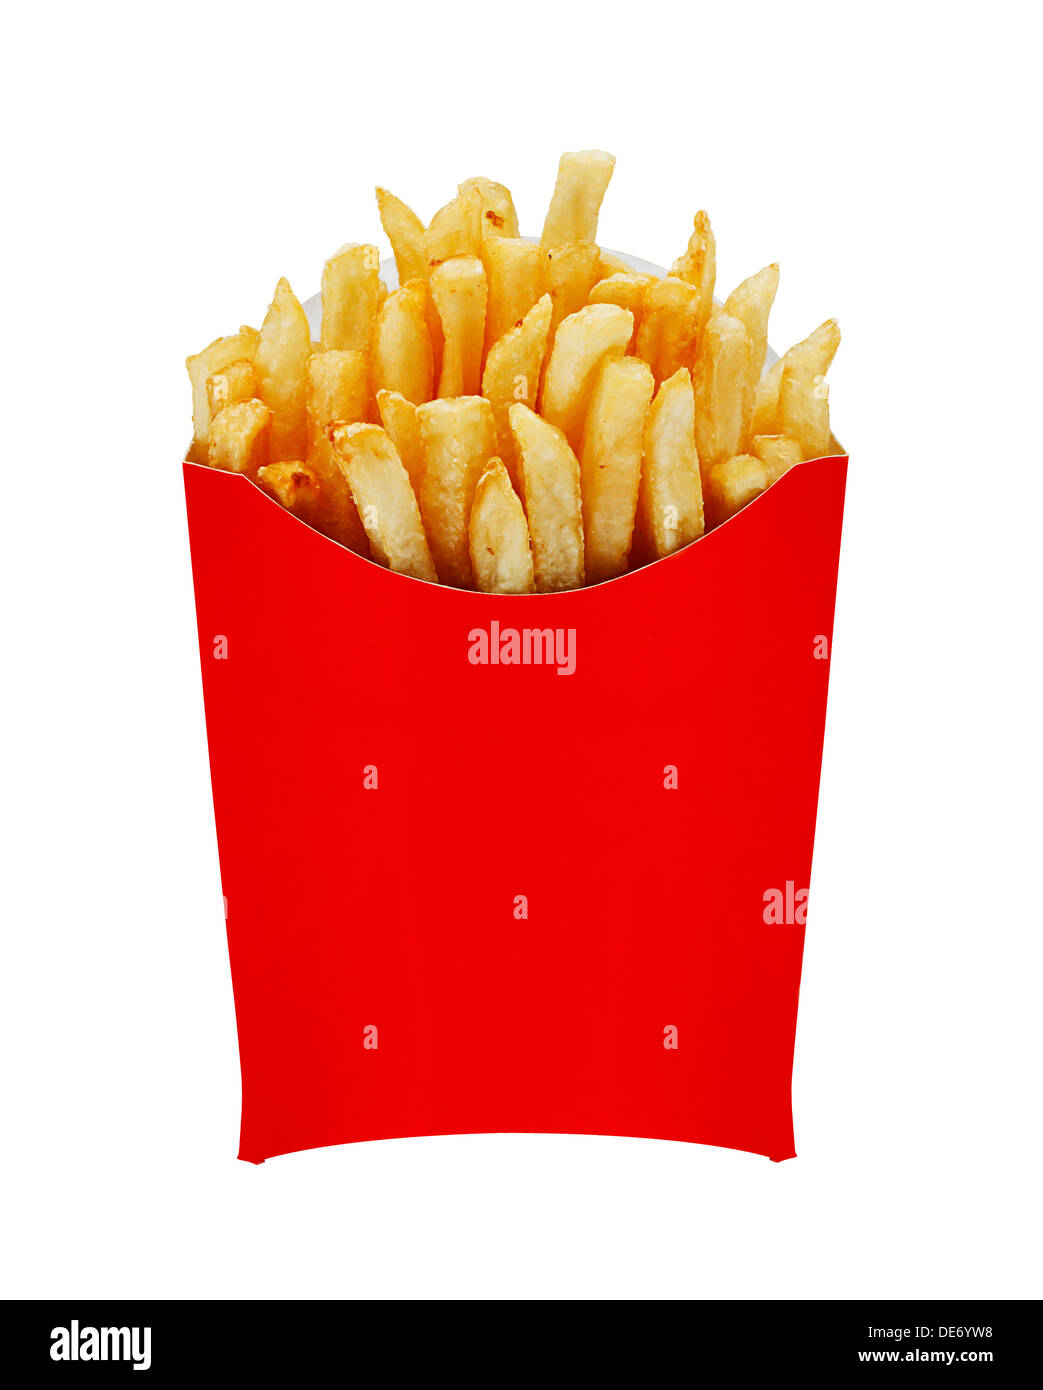 French Fries or Chips originally called pommes frites and more recently named freedom fries in america in a red serving carton - Stock Image